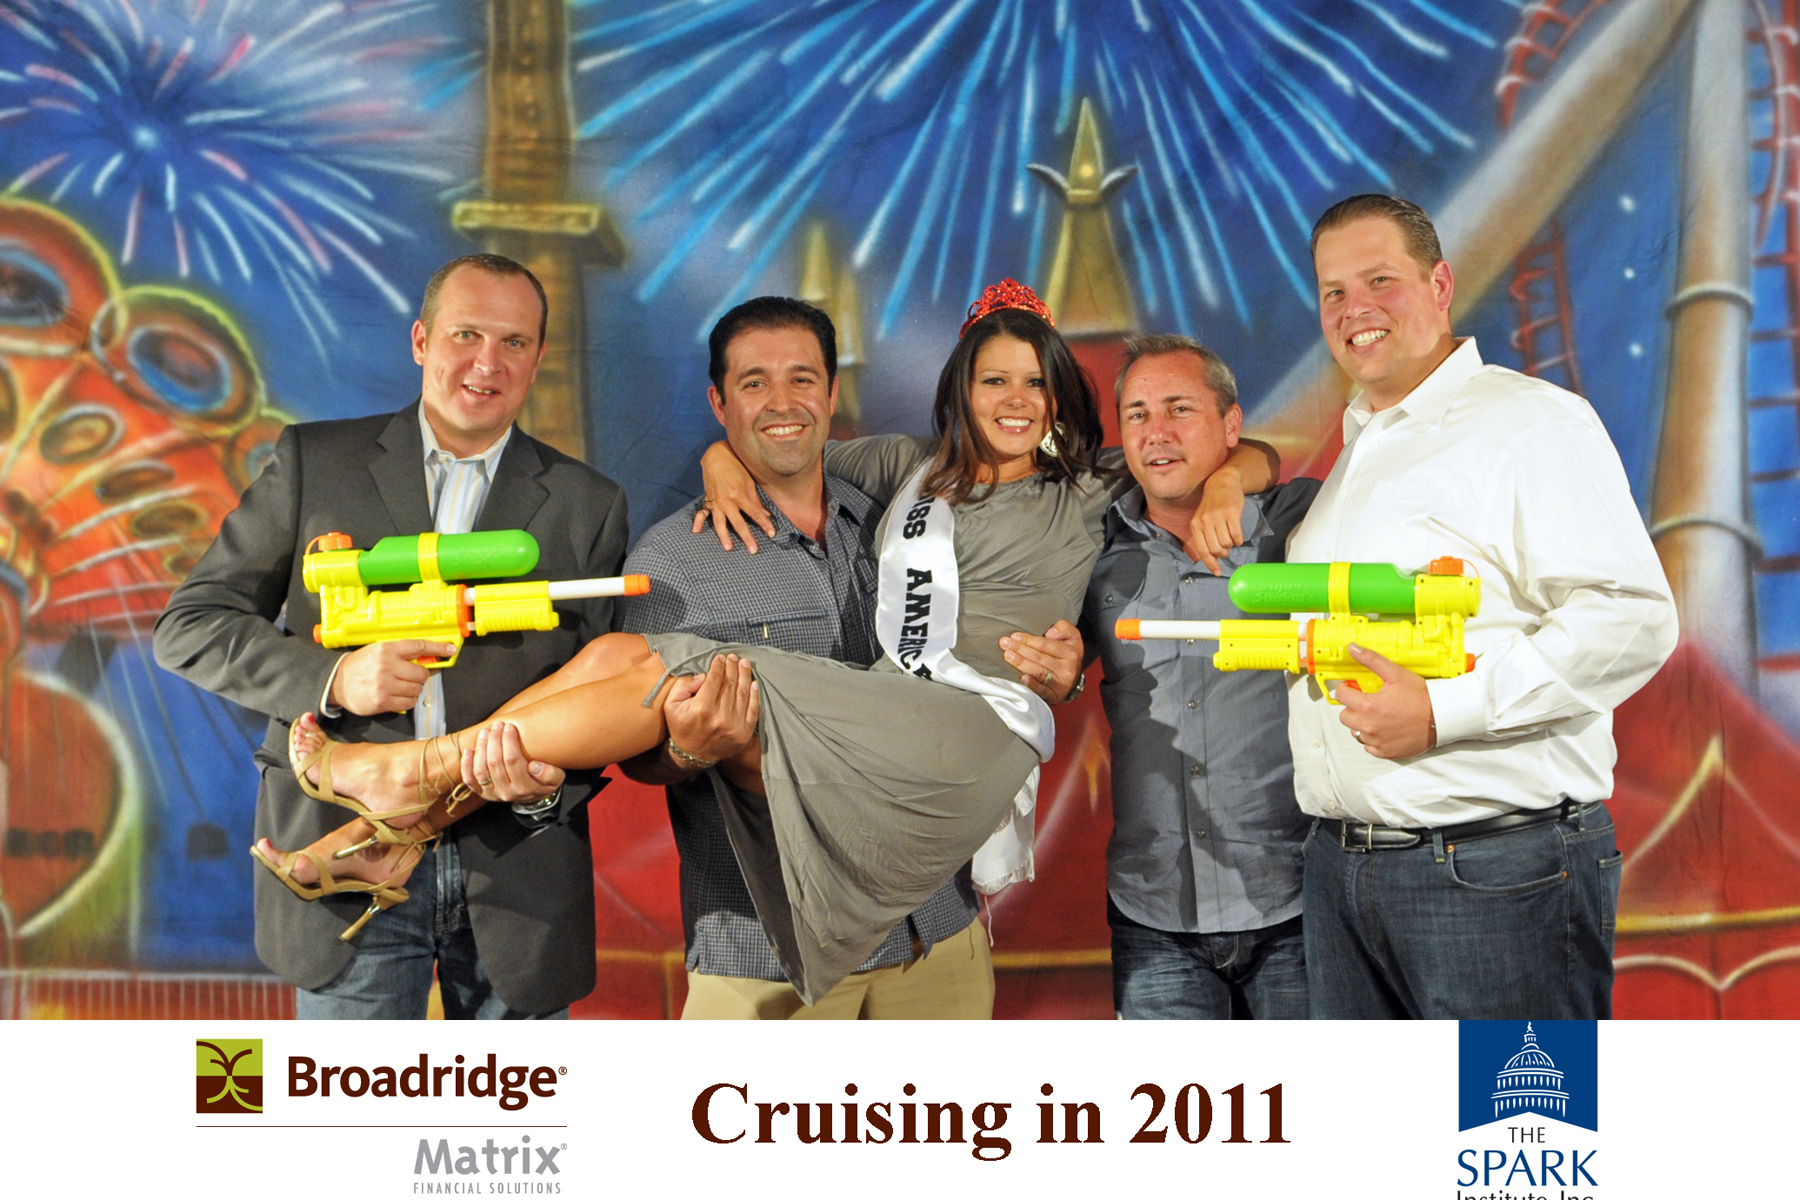 v Broadridge Matrix cruise theme 4x6.jpg